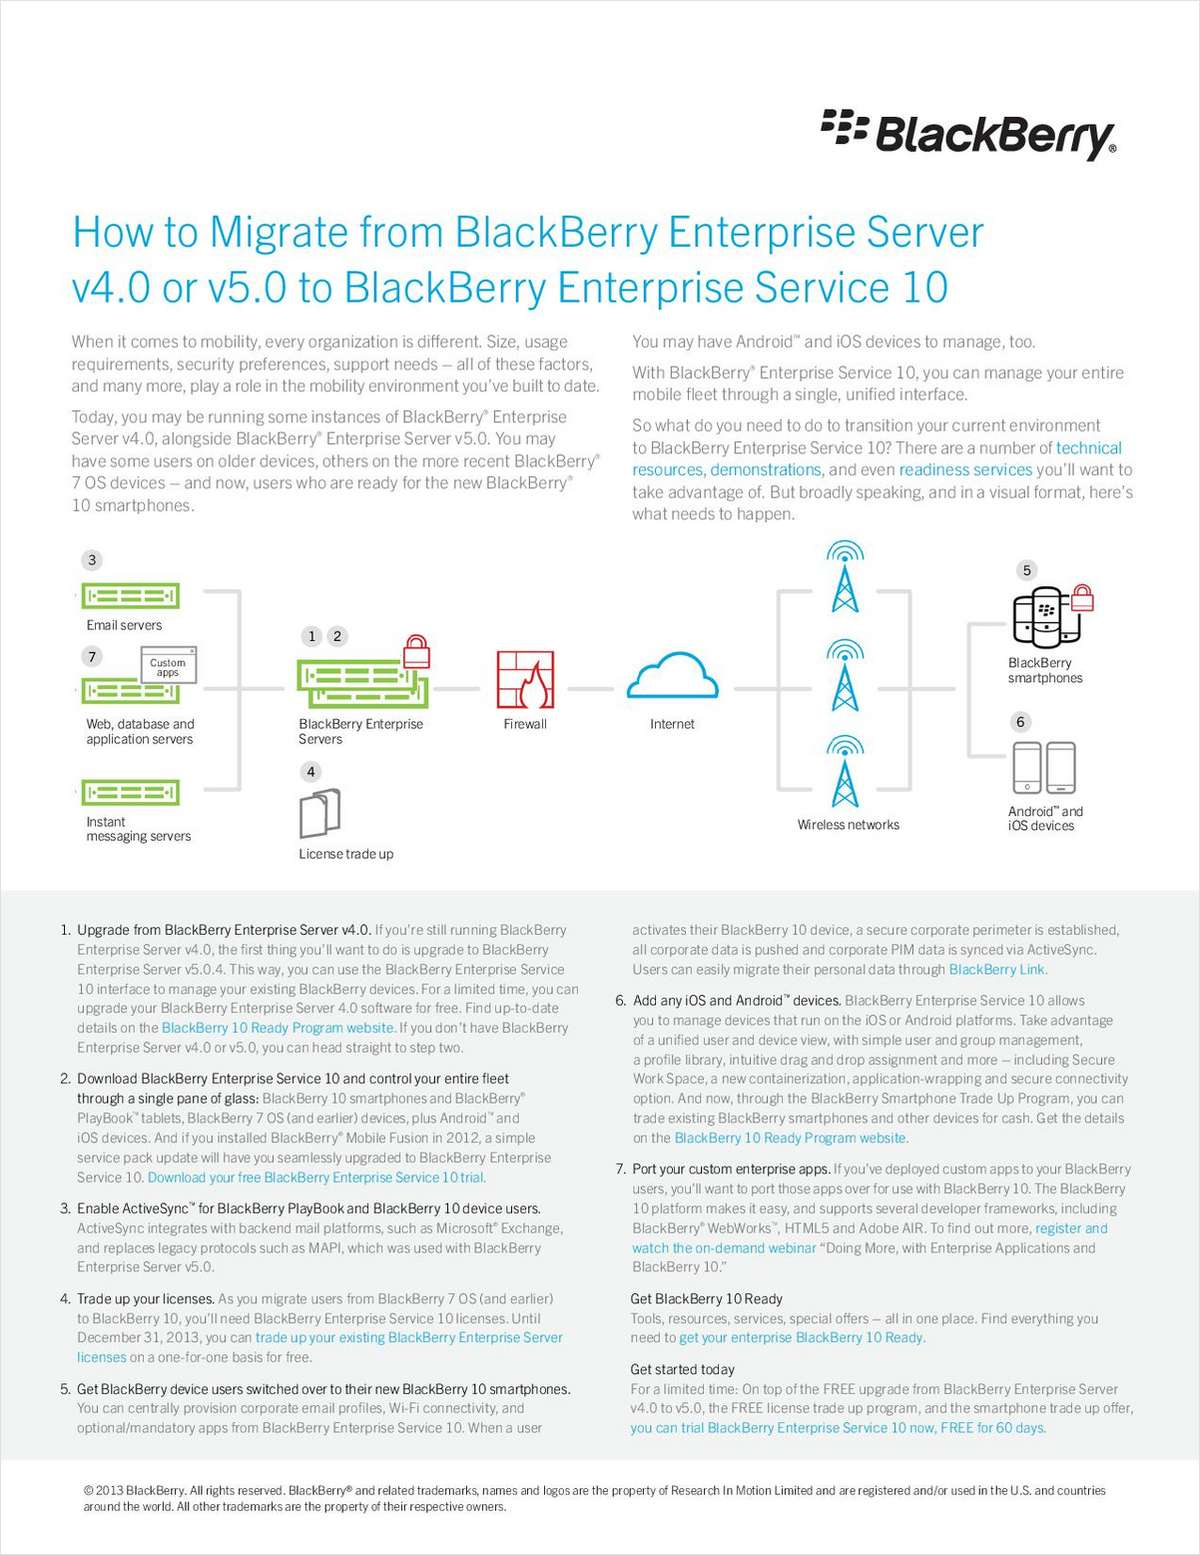 How to Transition Your Current BlackBerry Deployment to BlackBerry Enterprise Service 10